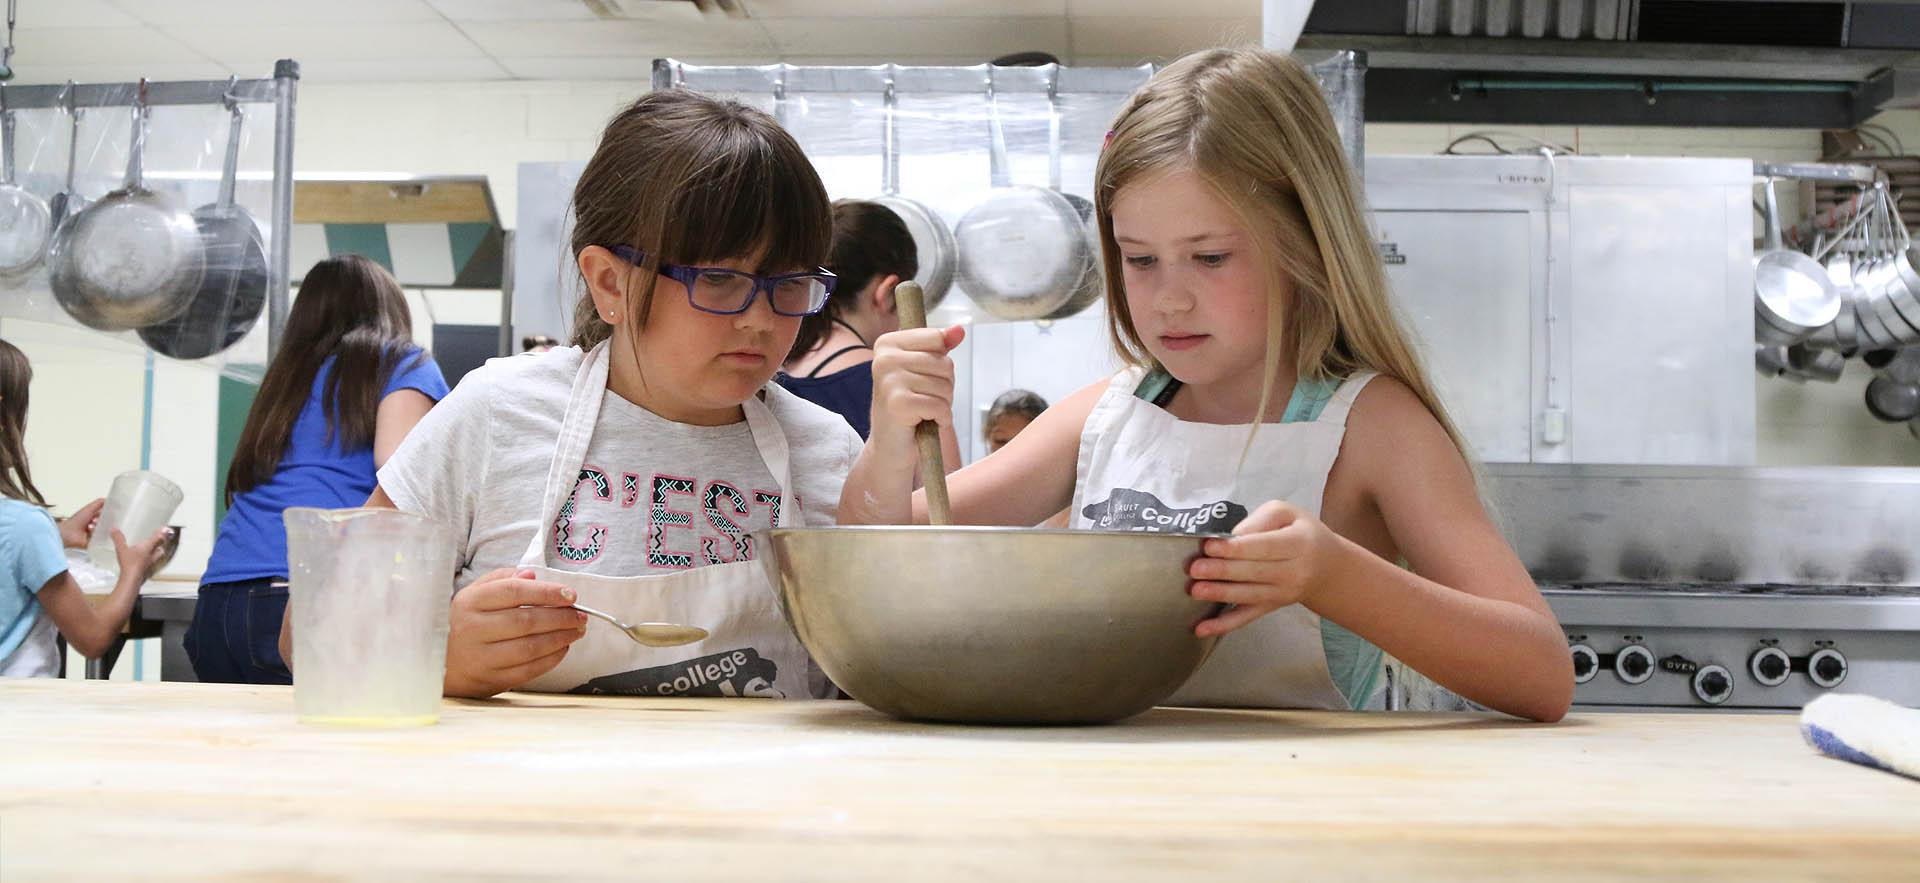 Kids camp students looking at bowl in culinary class